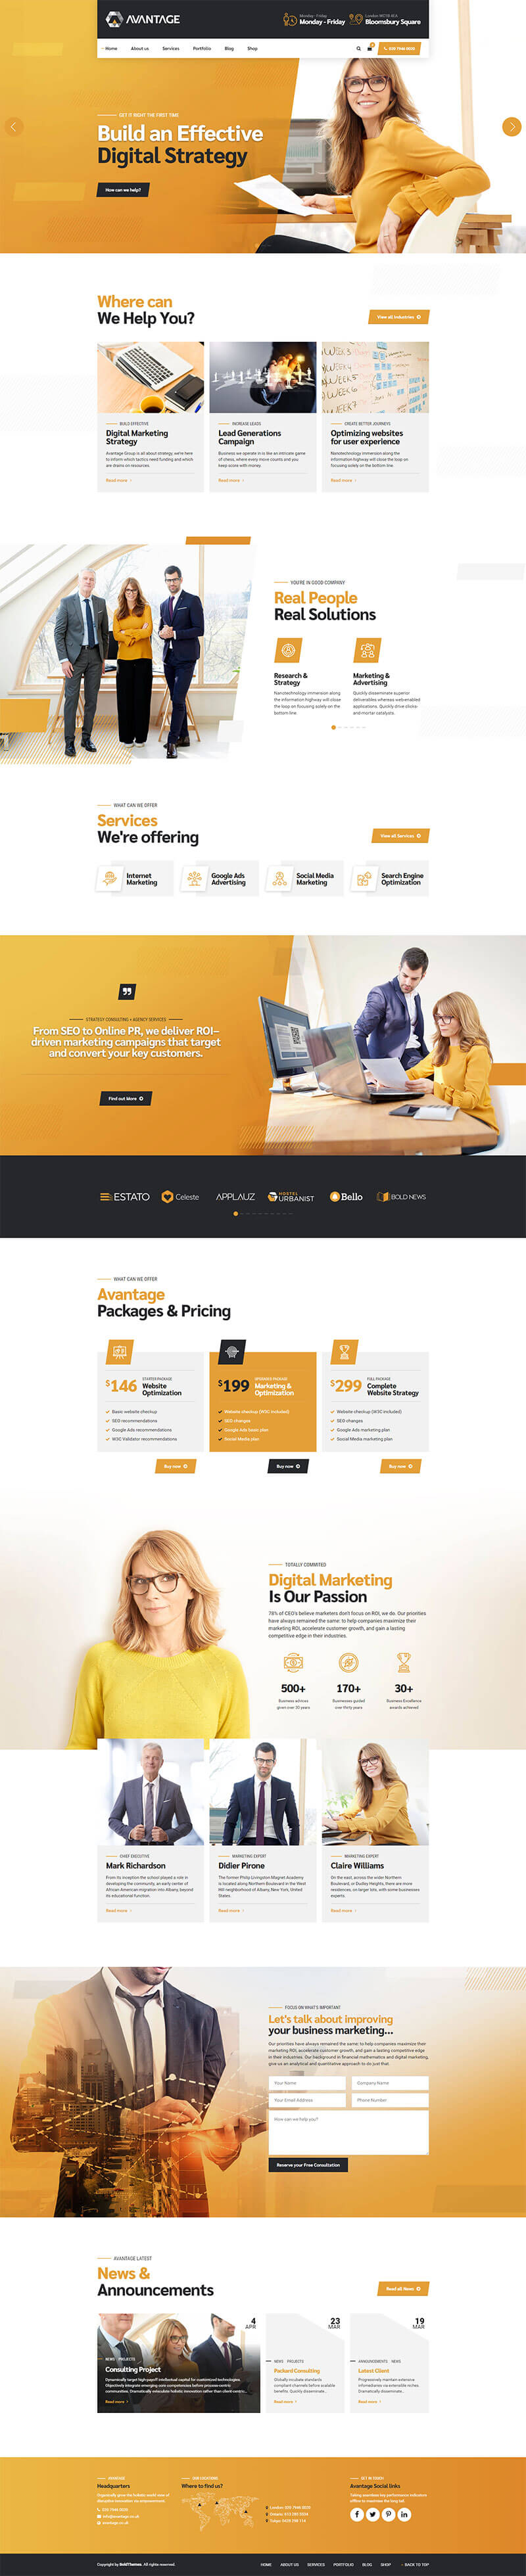 http://avantage.bold-themes.com/wp-content/uploads/2019/05/demo-02-marketing.jpg